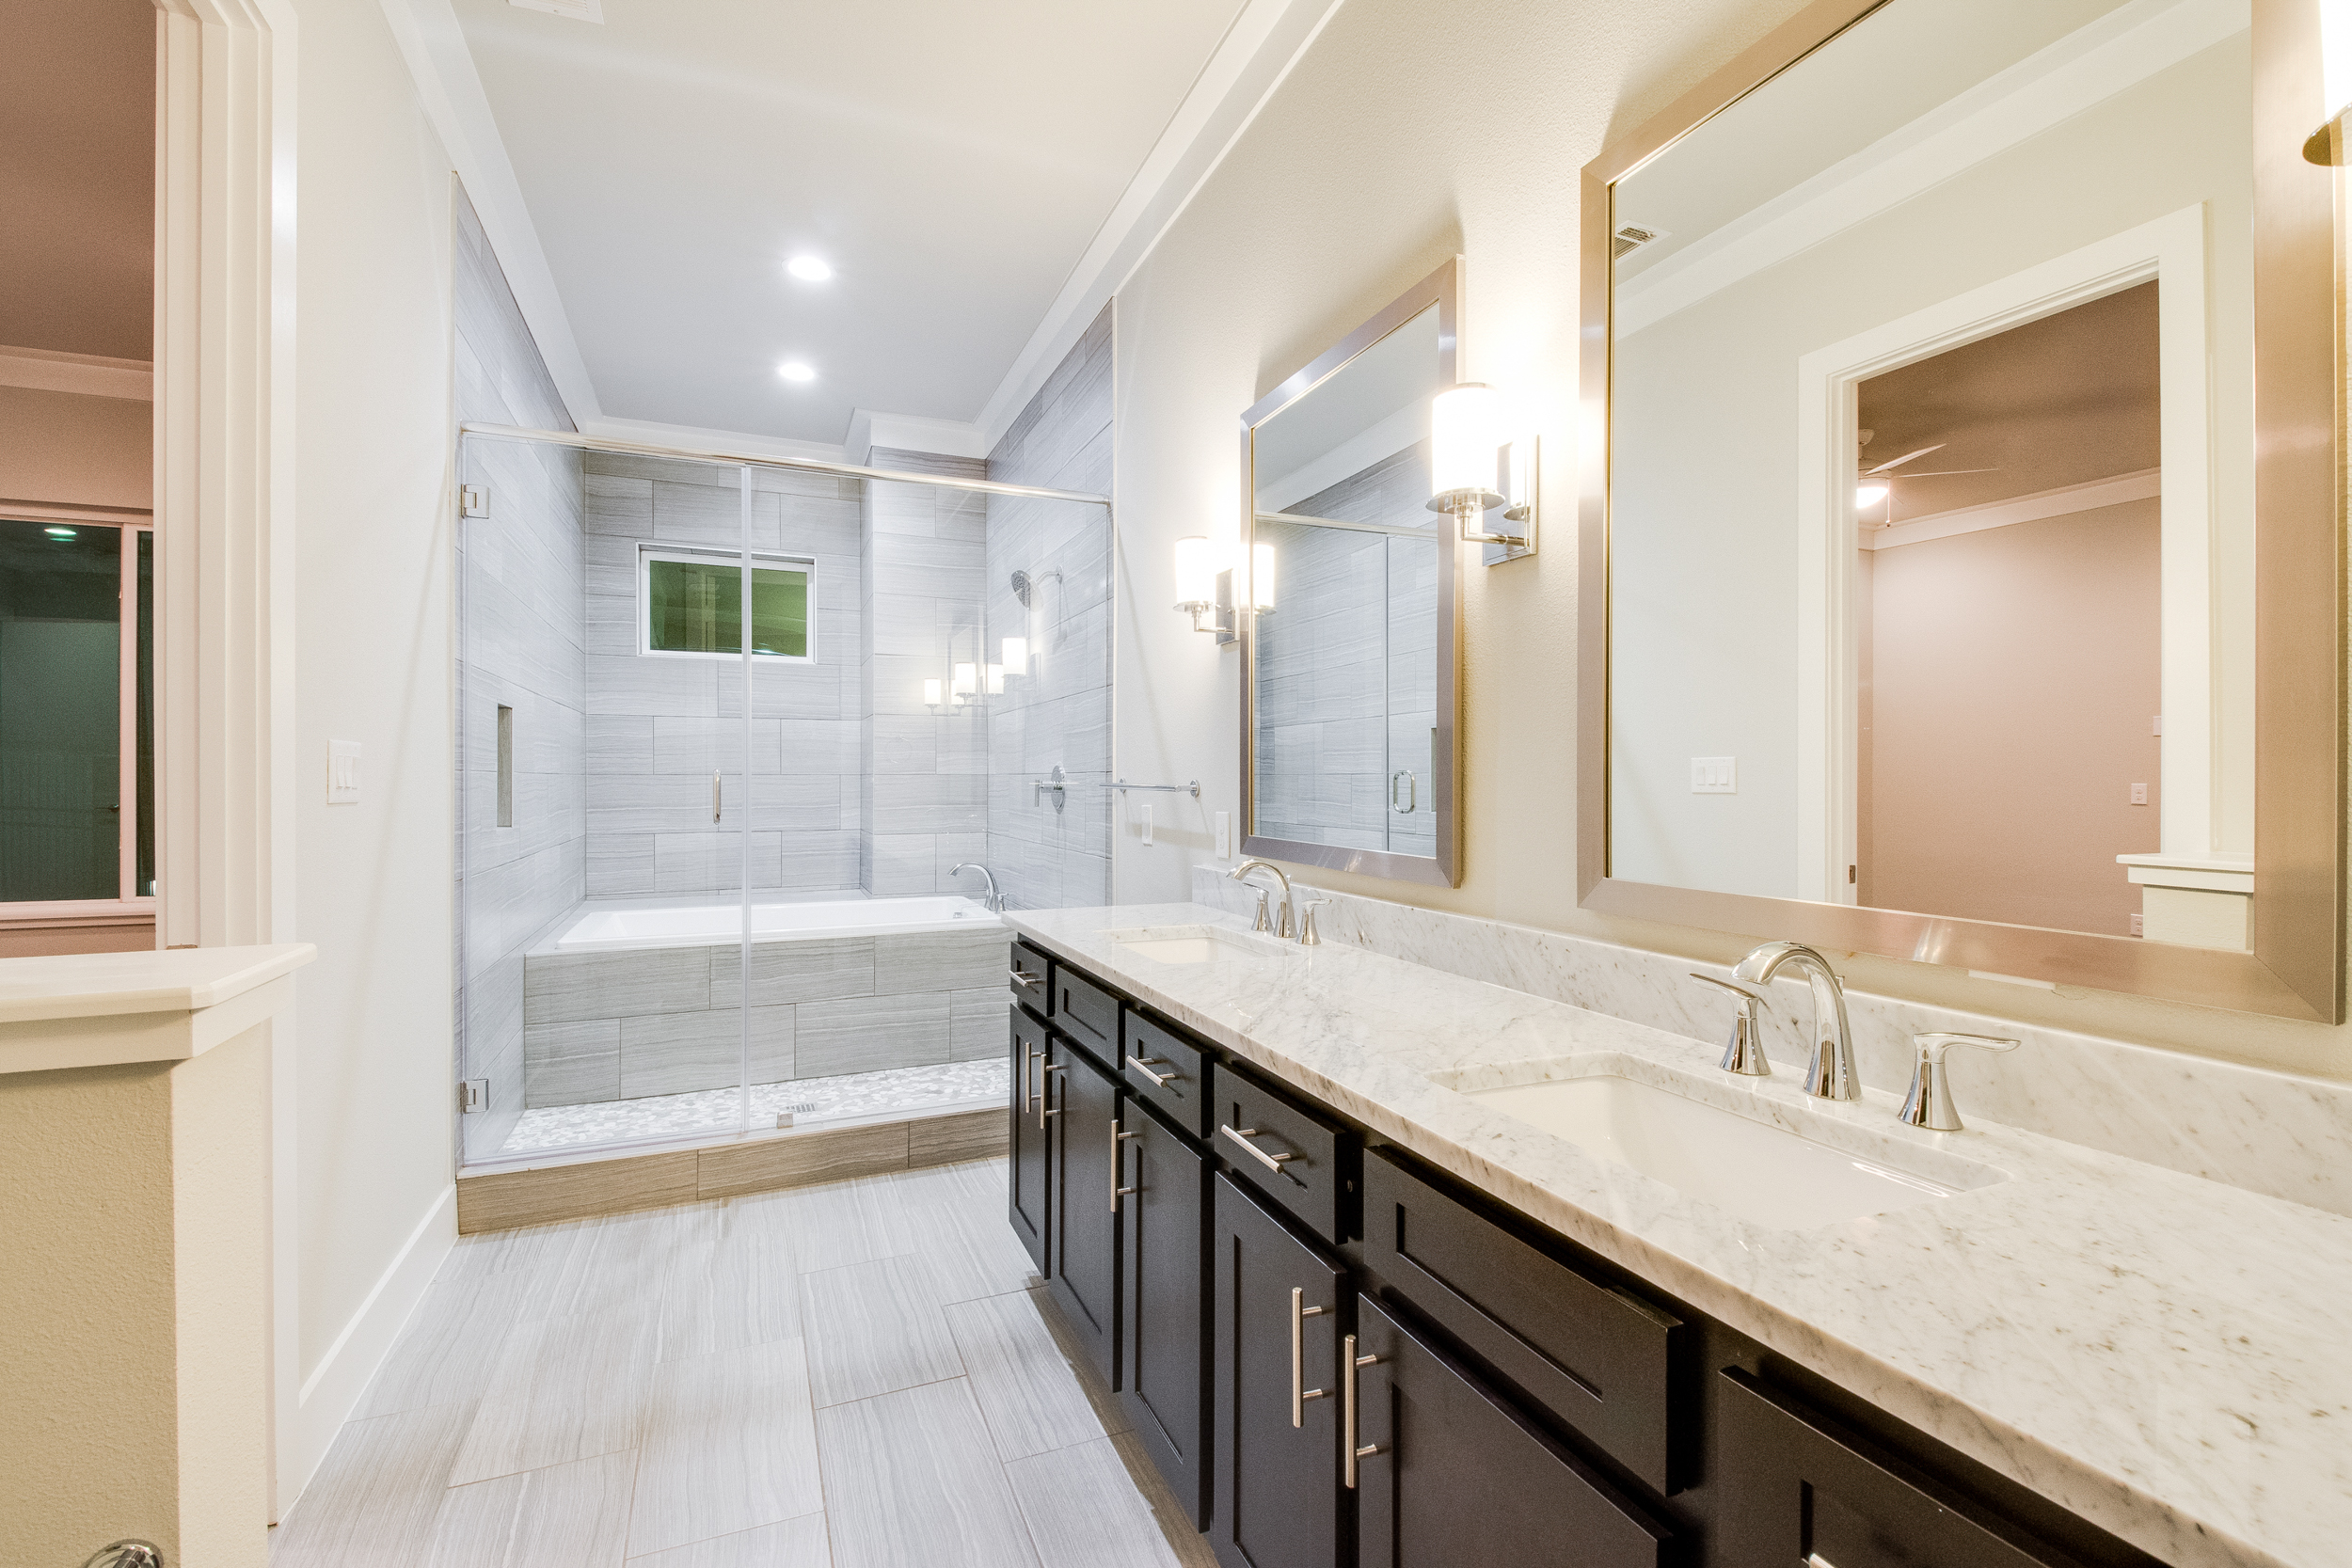 Interior view of the bathroom with two sinks, dark cabinets, light granite countertops, and a grey tiled shower with a bench